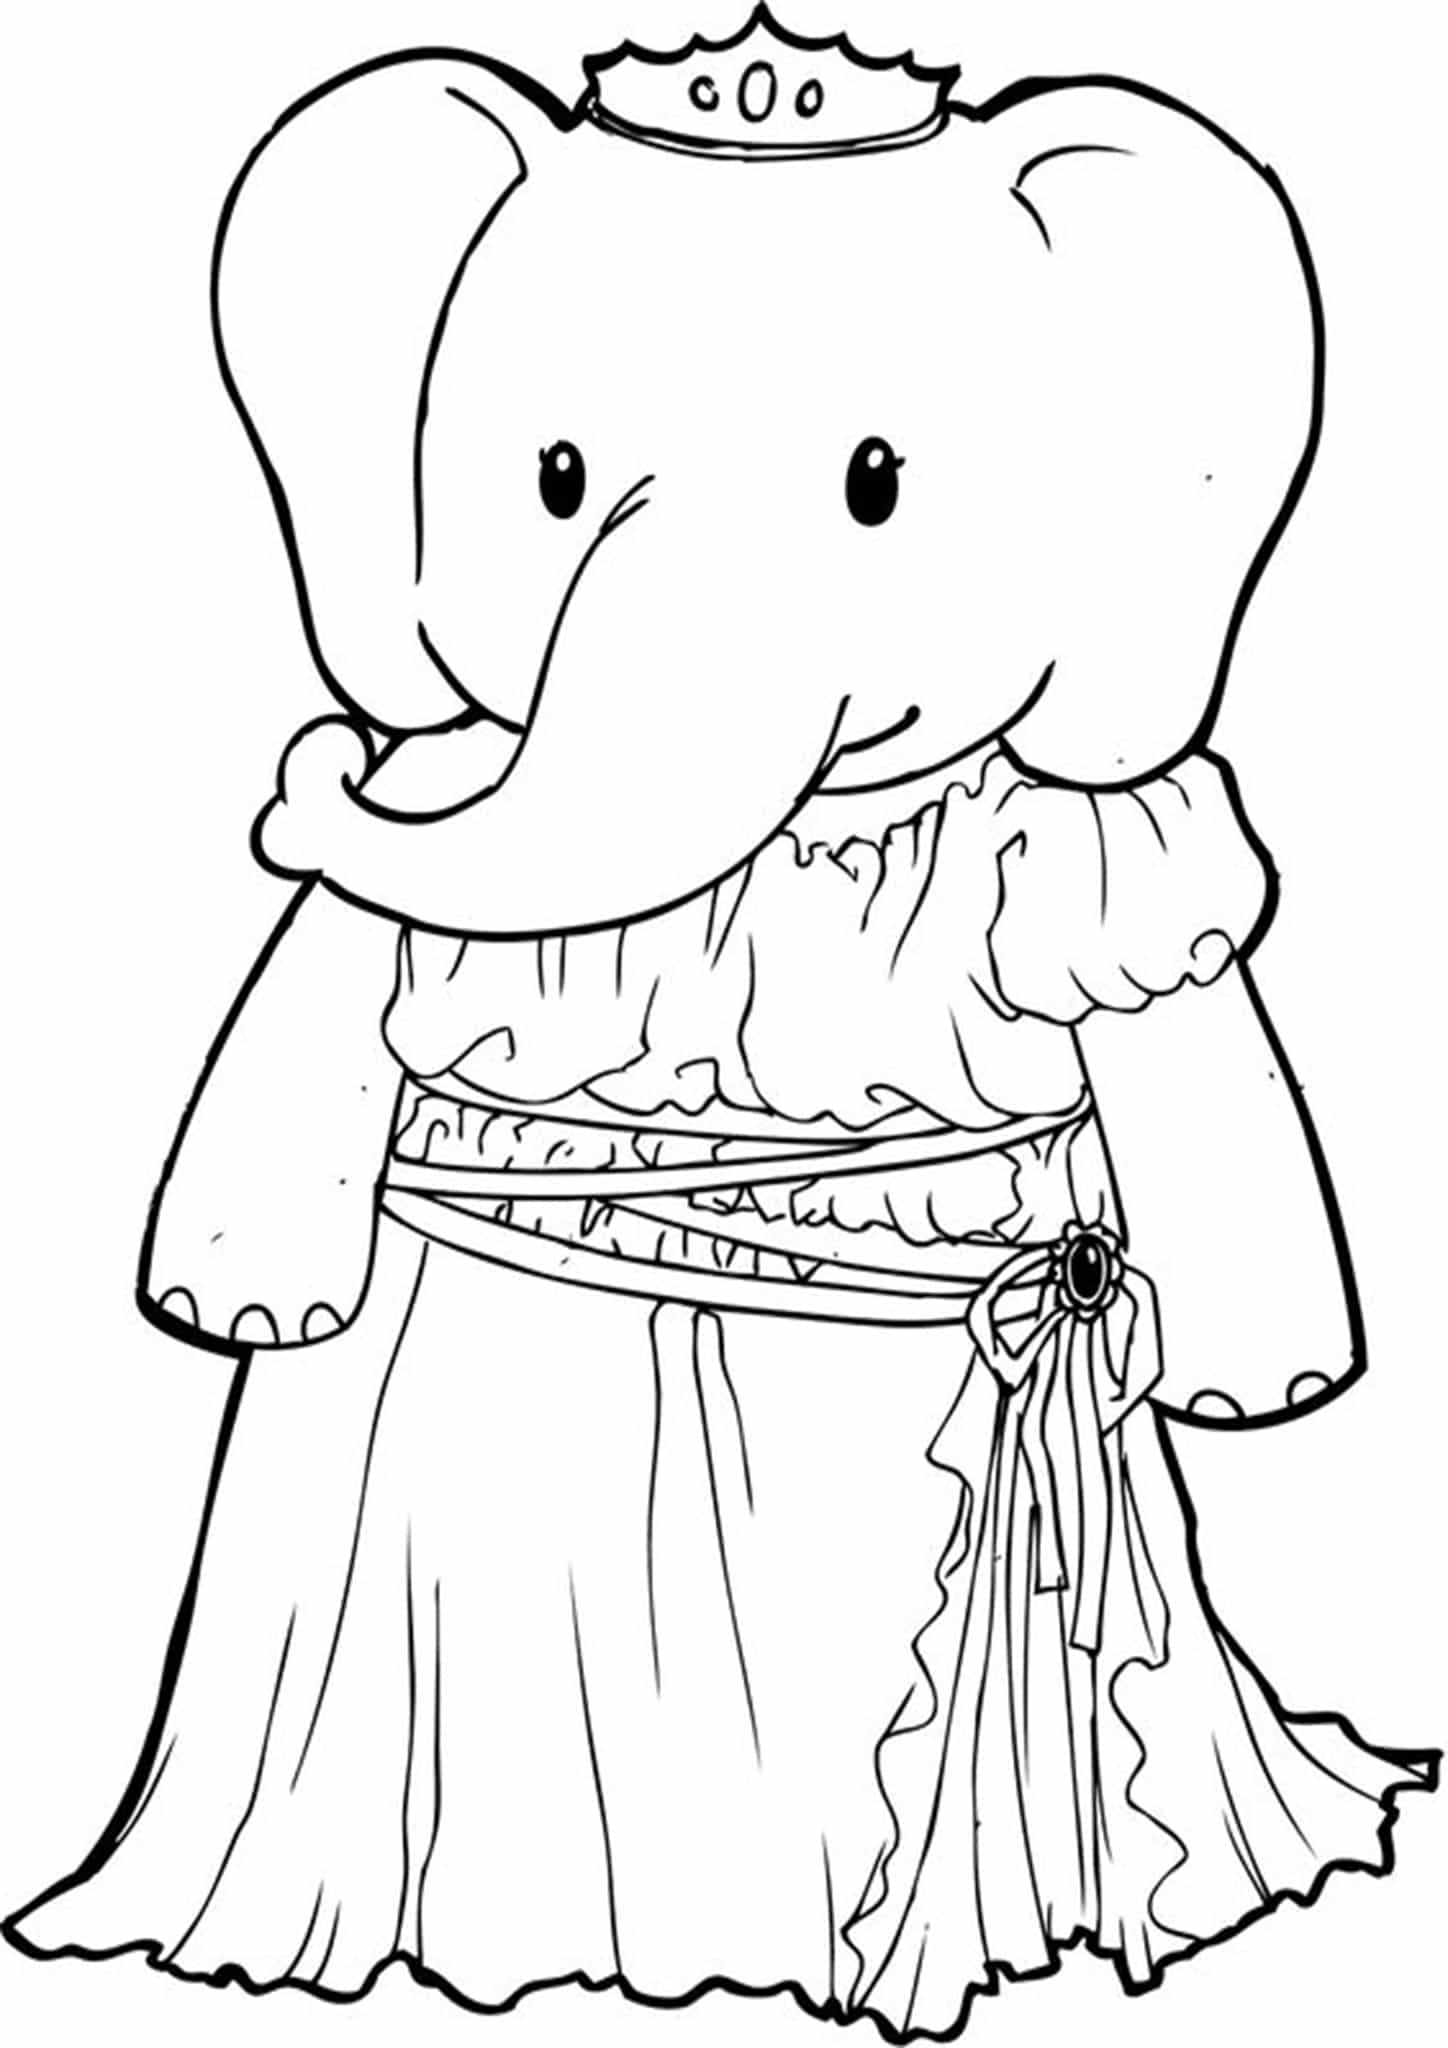 simple elephant coloring page elephant coloring pages coloring pages to download and print elephant coloring simple page